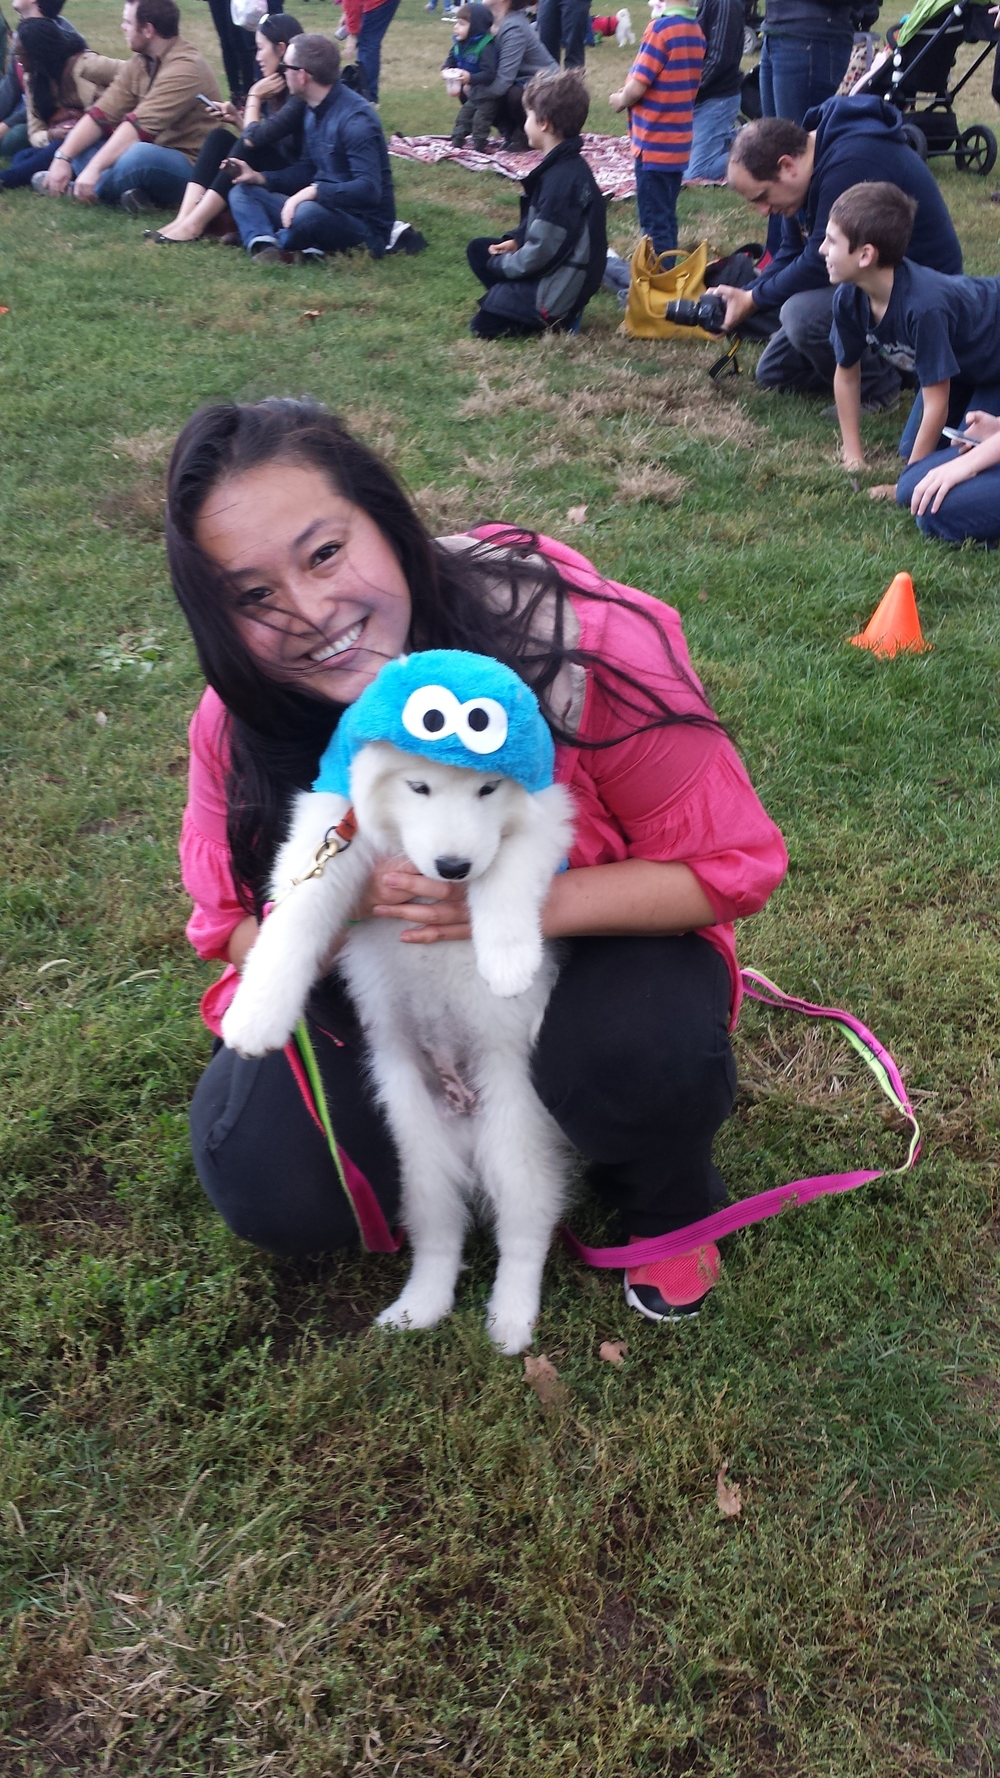 Cookie Monster (Justice) took fifth place and won a $25 gift certificate for Rescue Chocolate.